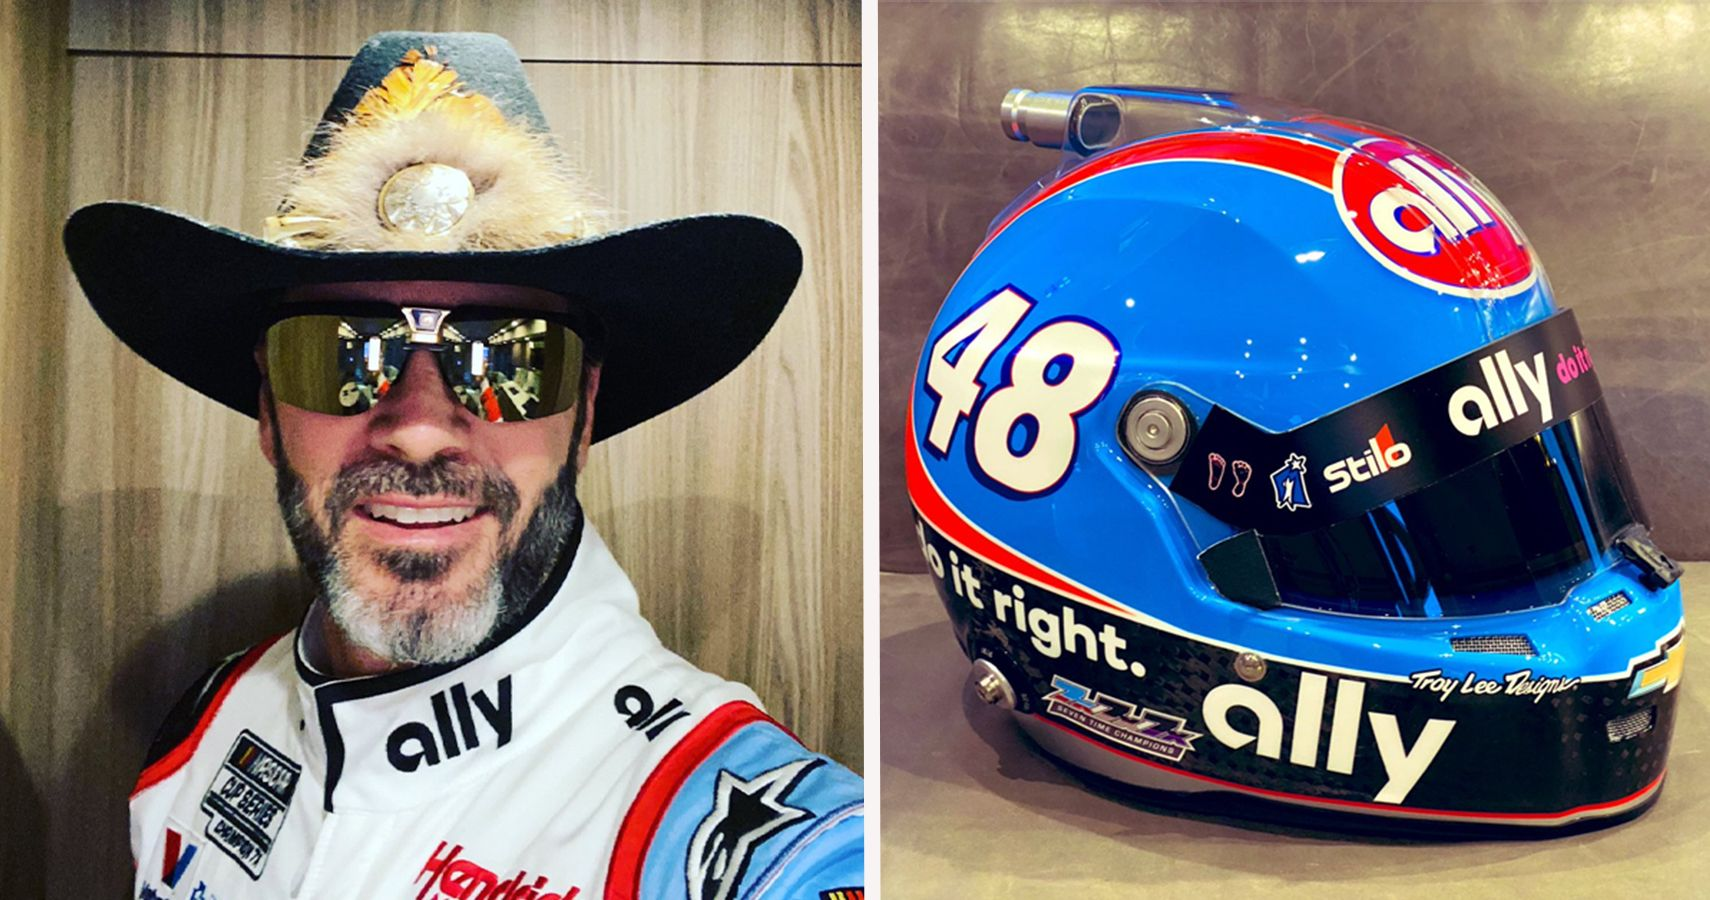 Check Out Jimmie Johnsons's Awesome Dale Earnhardt And Richard Petty Tributes